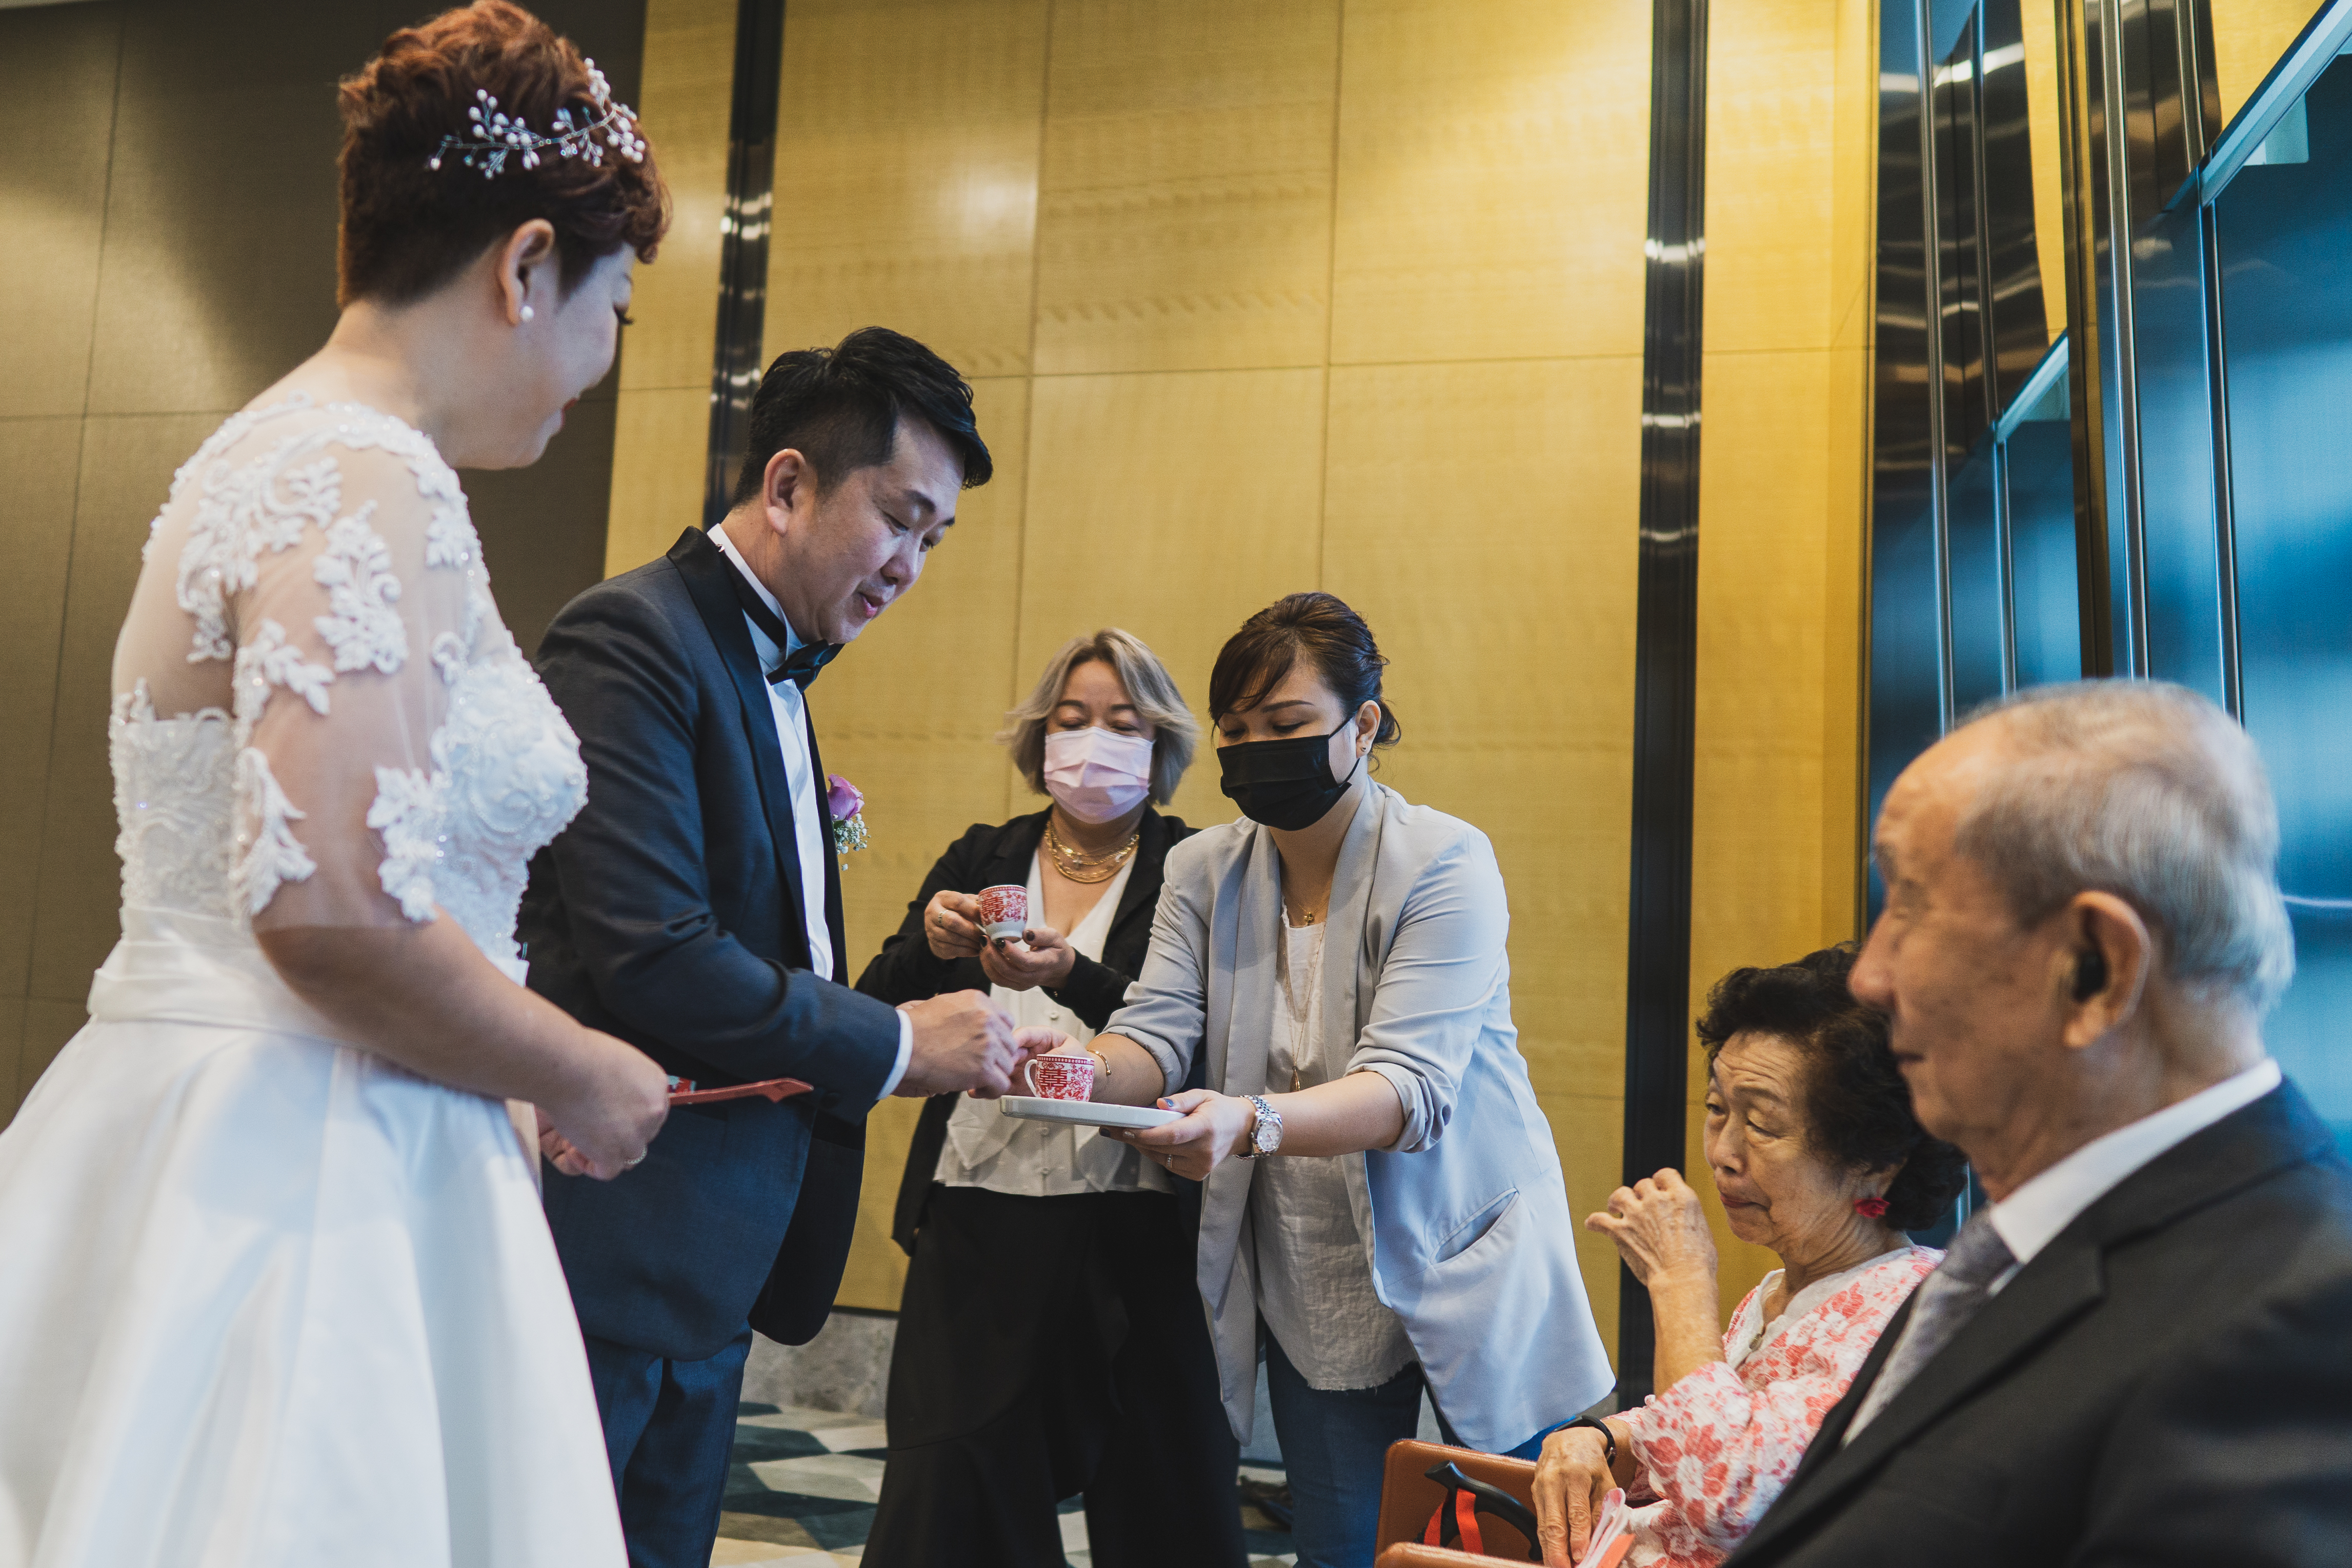 Tea ceremony at a wedding in Sofitel City Centre Hotel at Tanjong Pagar